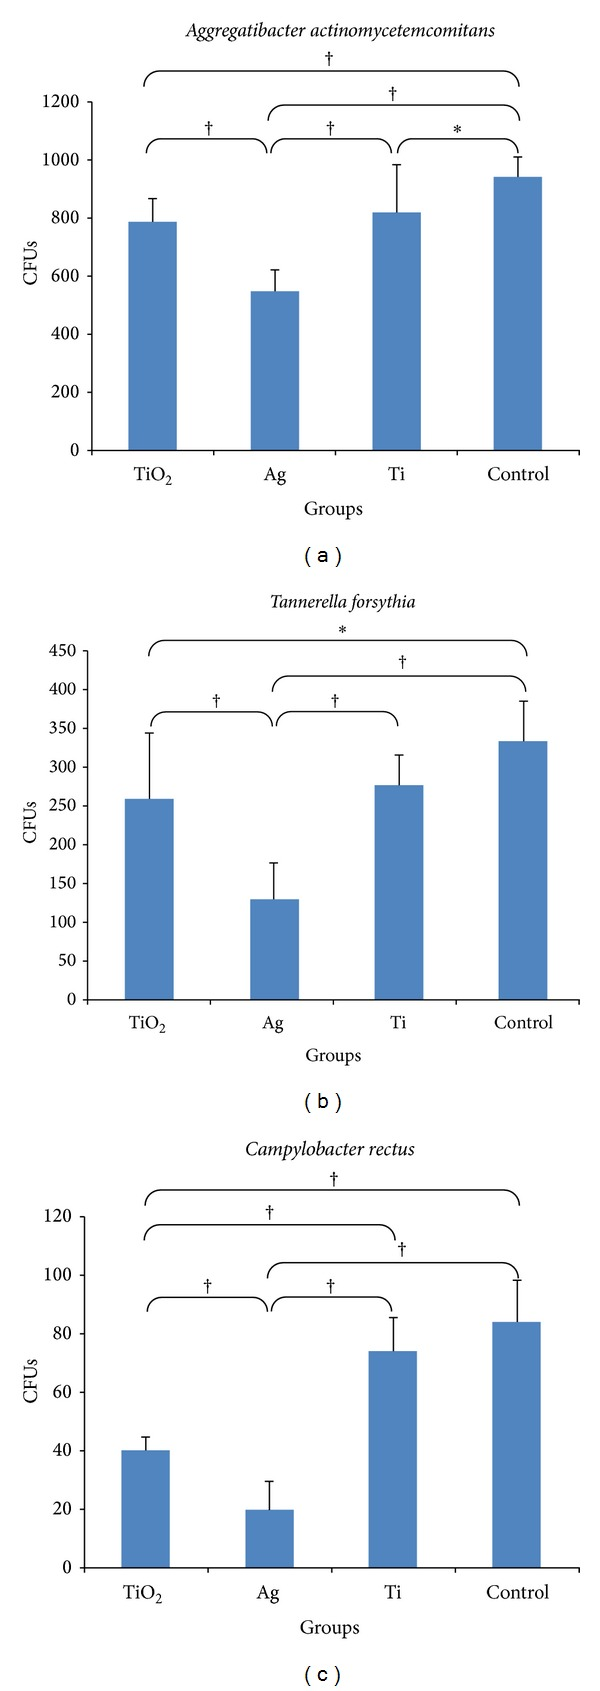 Descriptive analysis of adhesion of (a) A. actinomycetemcomitans , (b) T. forsythia , and (c) C. rectus on all groups tested (Group TiO 2 : as-annealed TiO 2 nanotubes; Group Ag: as-annealed Ag doped TiO 2 nanotubes; Group Ti: commercially pure Ti sheet; Control Group: 24-well cell culture plate bottoms). Data are presented as the mean ± SD (standard deviation). Results were analyzed using a one-way ANOVA and post hoc analyses were performed using Tukey's studentized range (HSD) test (* P